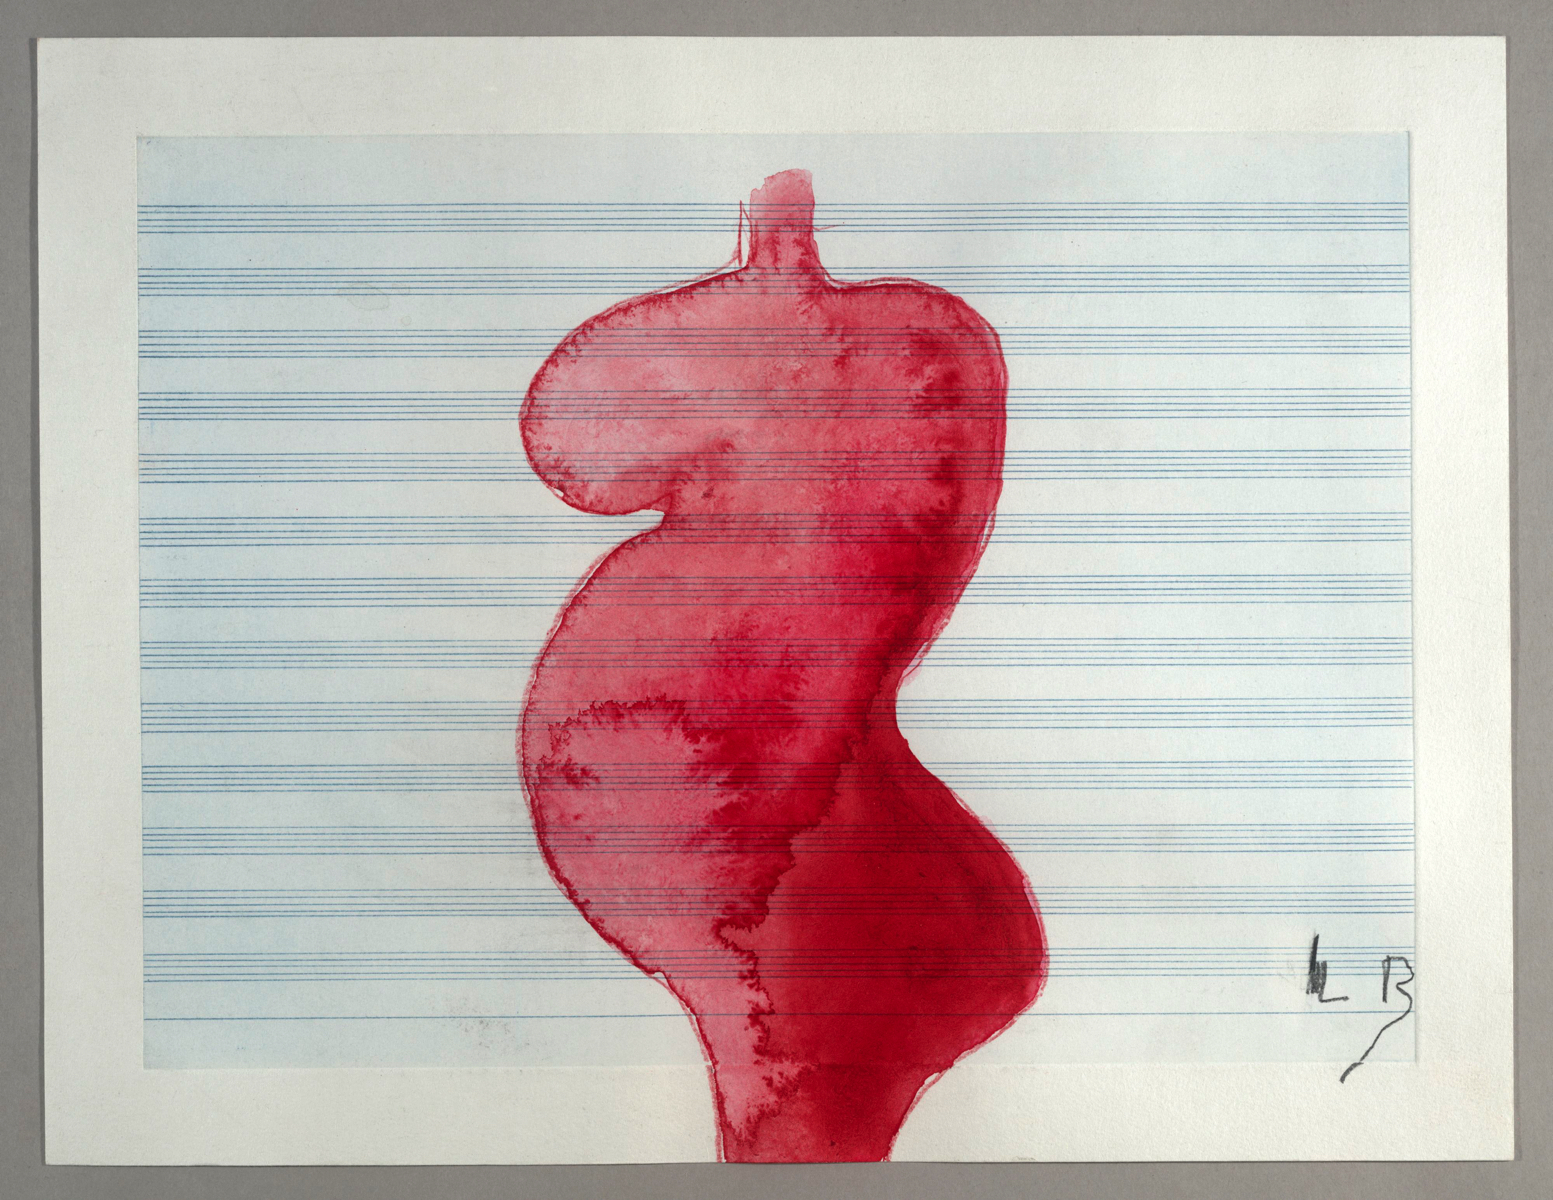 Louise BOURGEOIS (1911-2010)Gouache and colored pencil on etched music paper29,2 x 38,1 cm